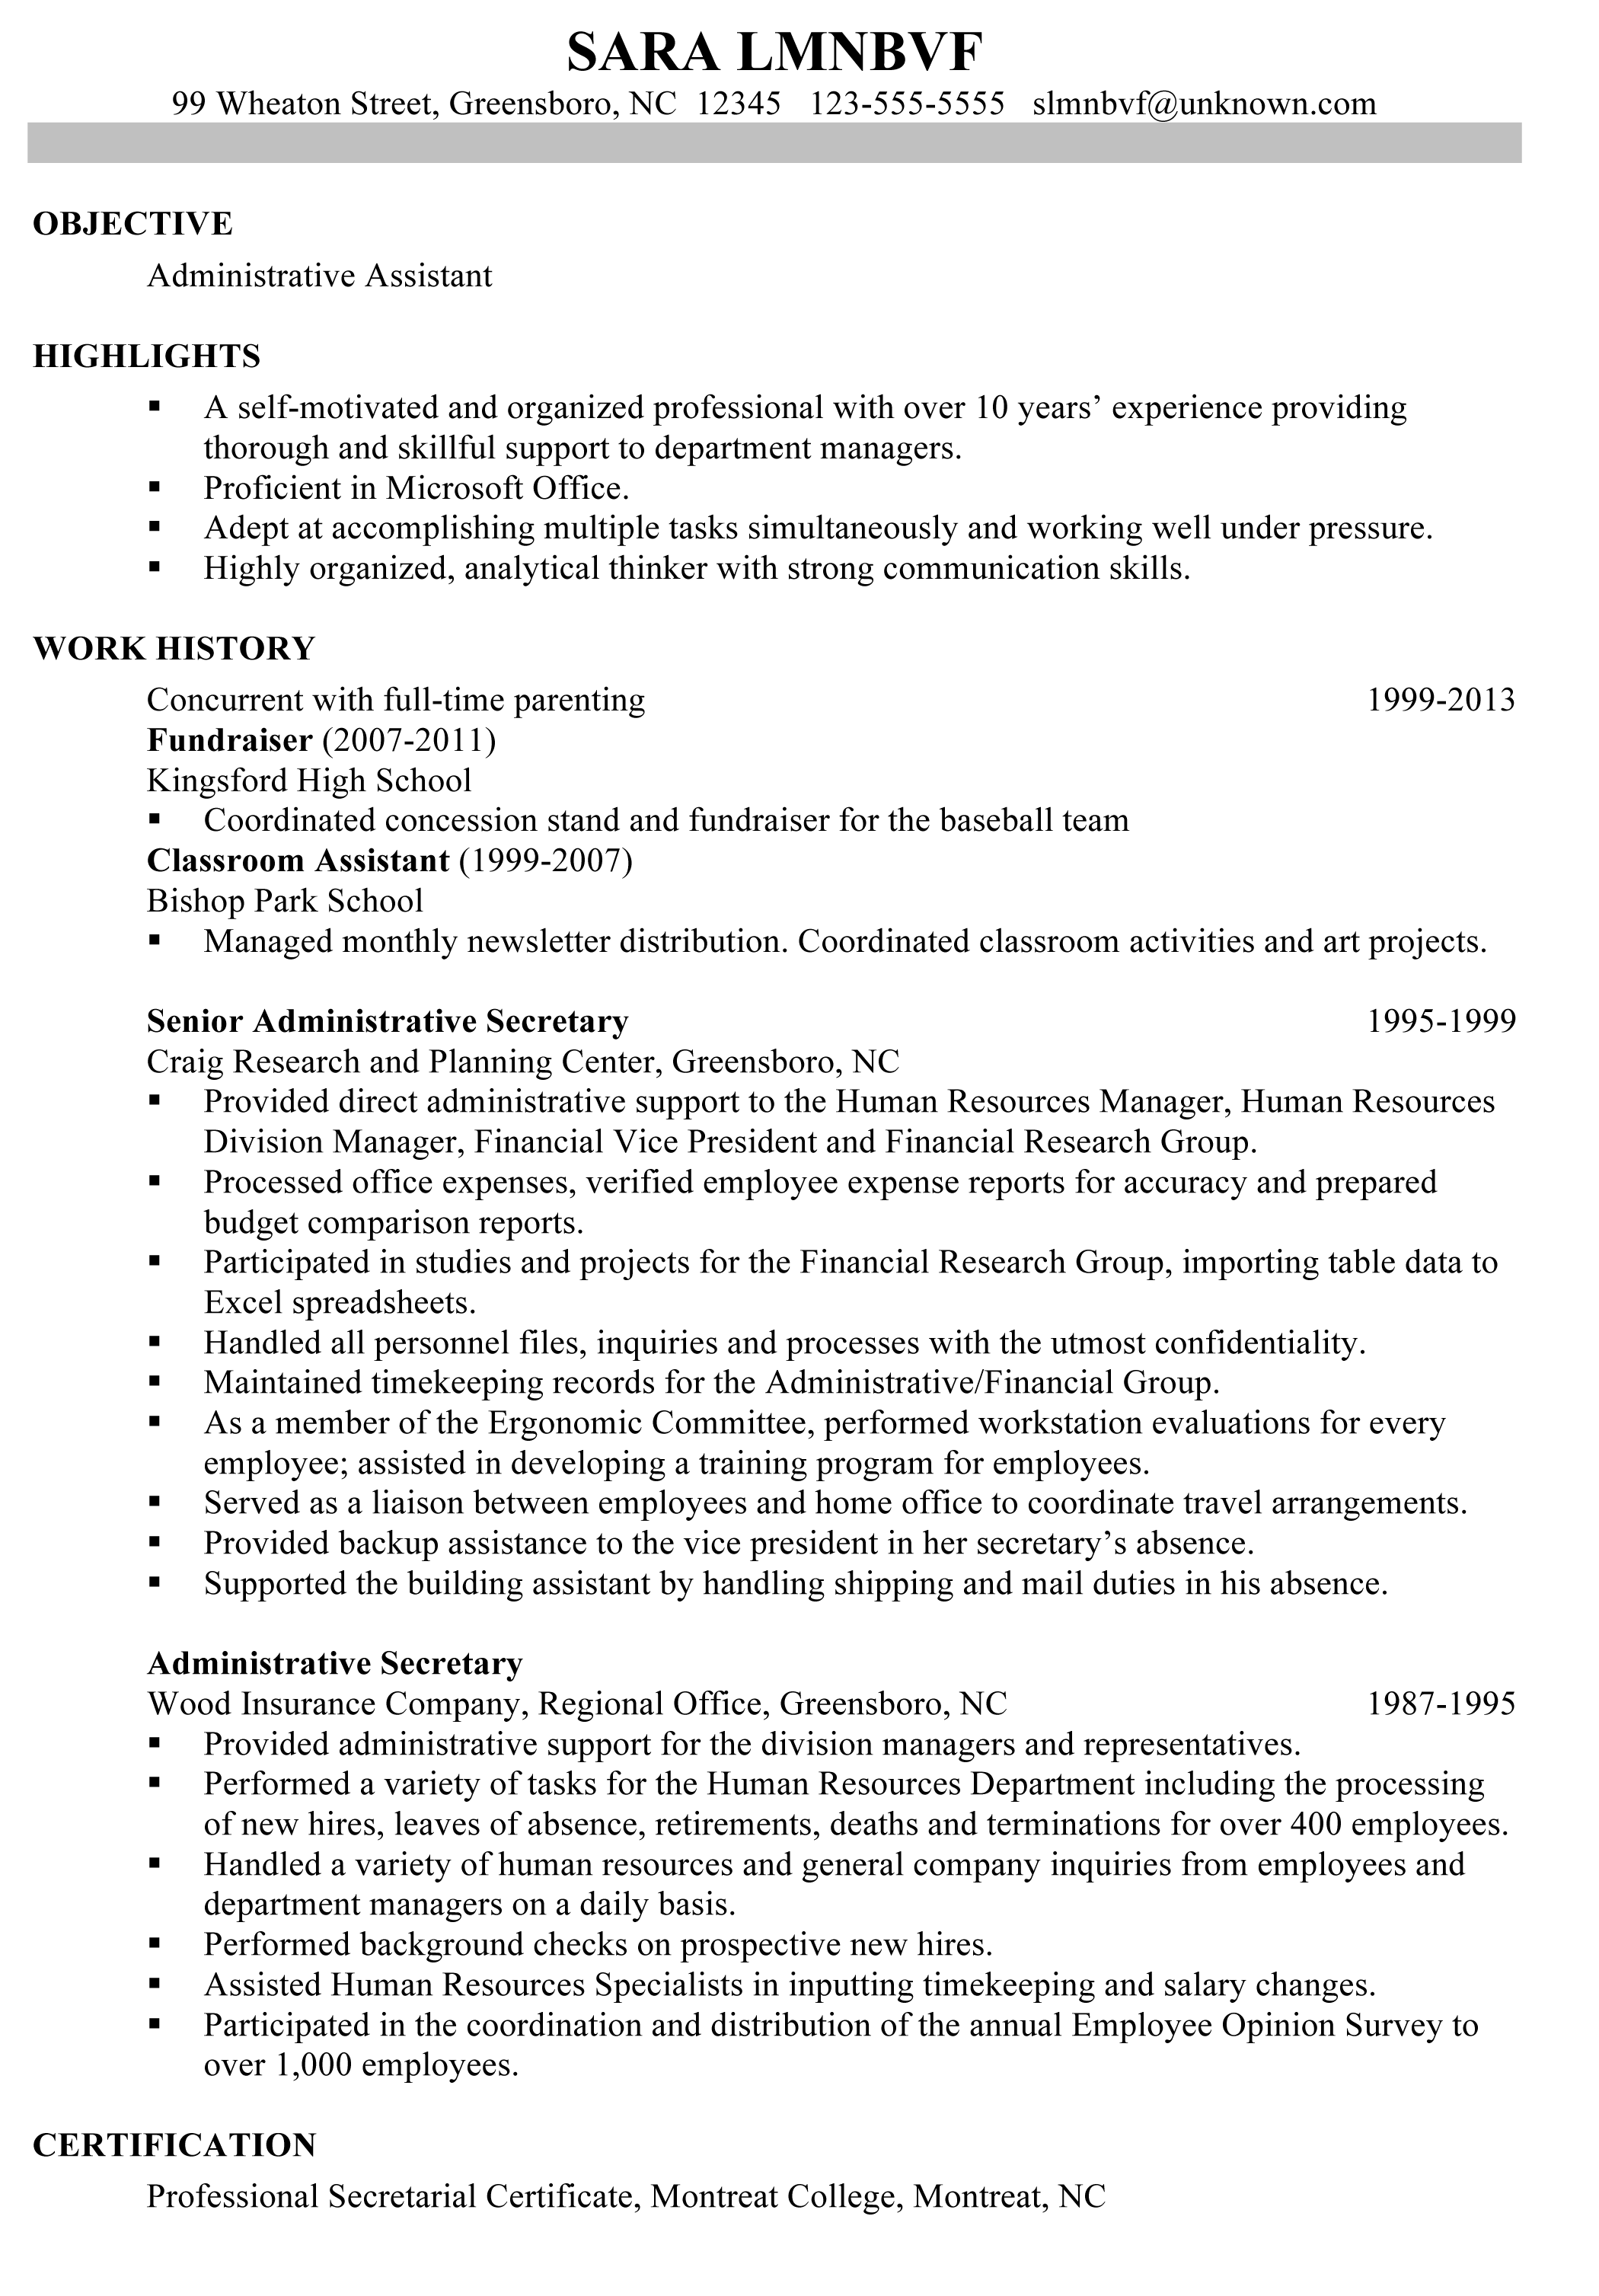 Resume Objective For Administrative Assistant Great Administrative Assistant Resumes  Using Professional Resume